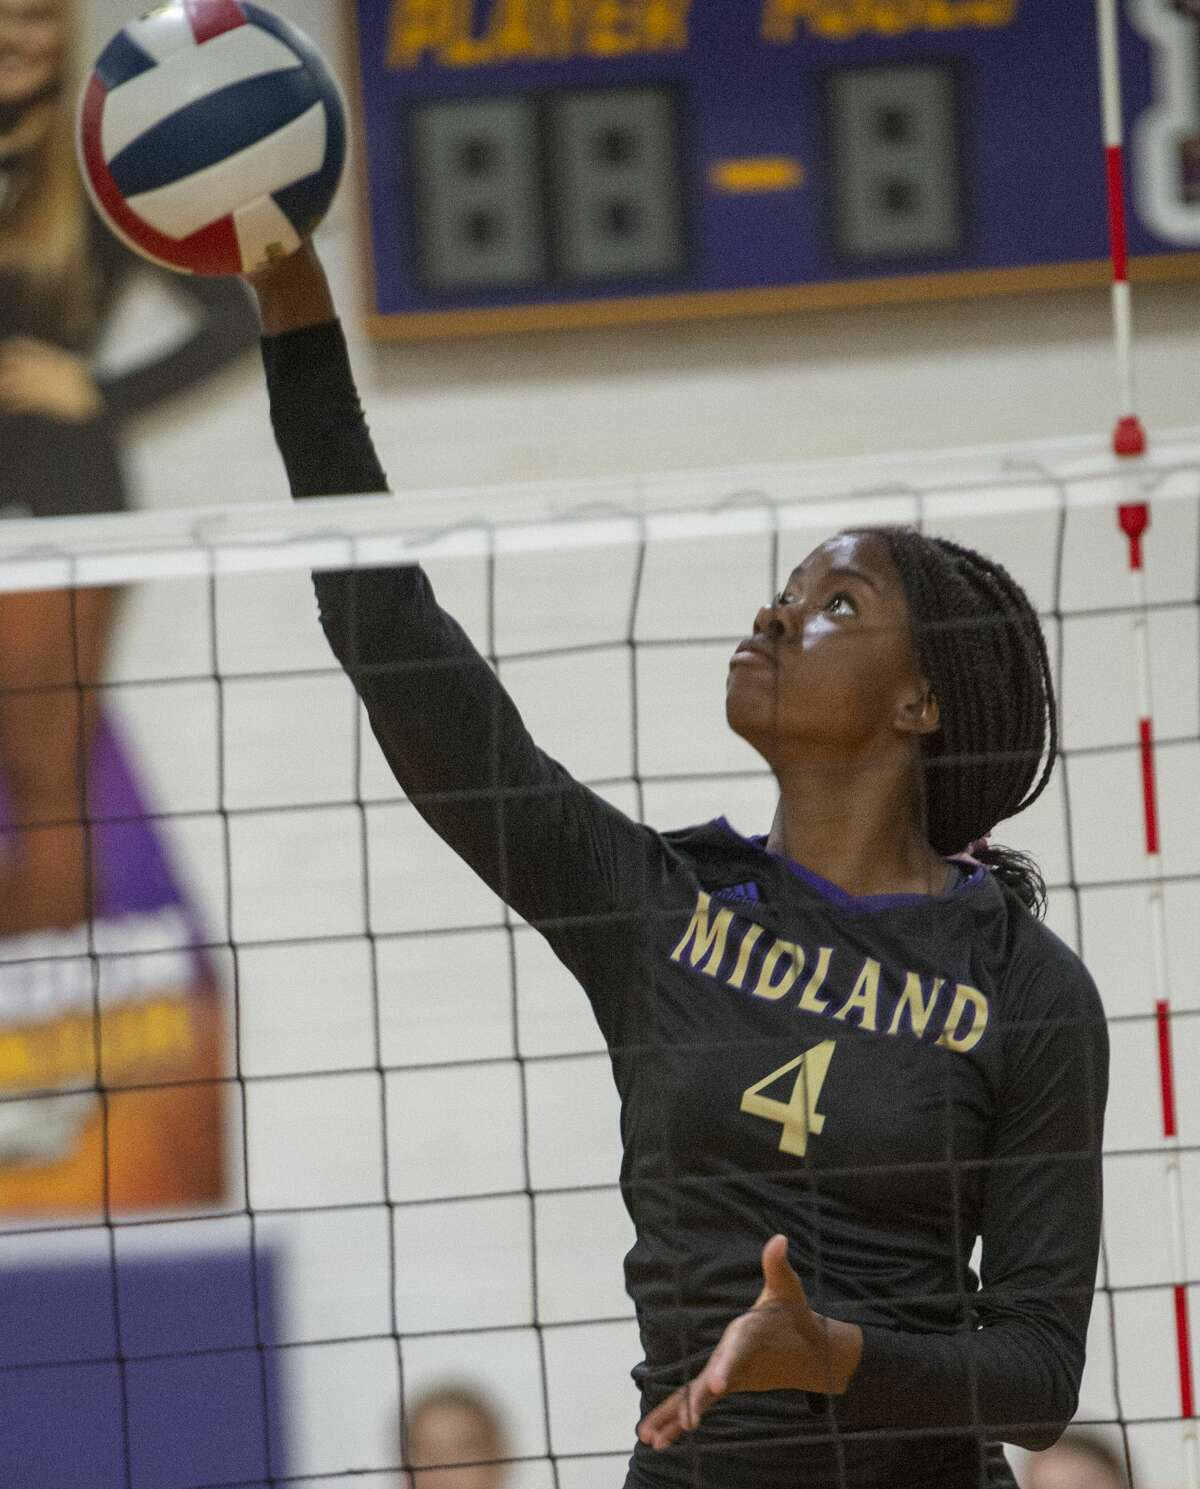 Midland High's Aniya Clinton goes up for a kill 10/22/19 as MHS takes on Odessa High in the Midland High gym. Tim Fischer/Reporter-Telegram